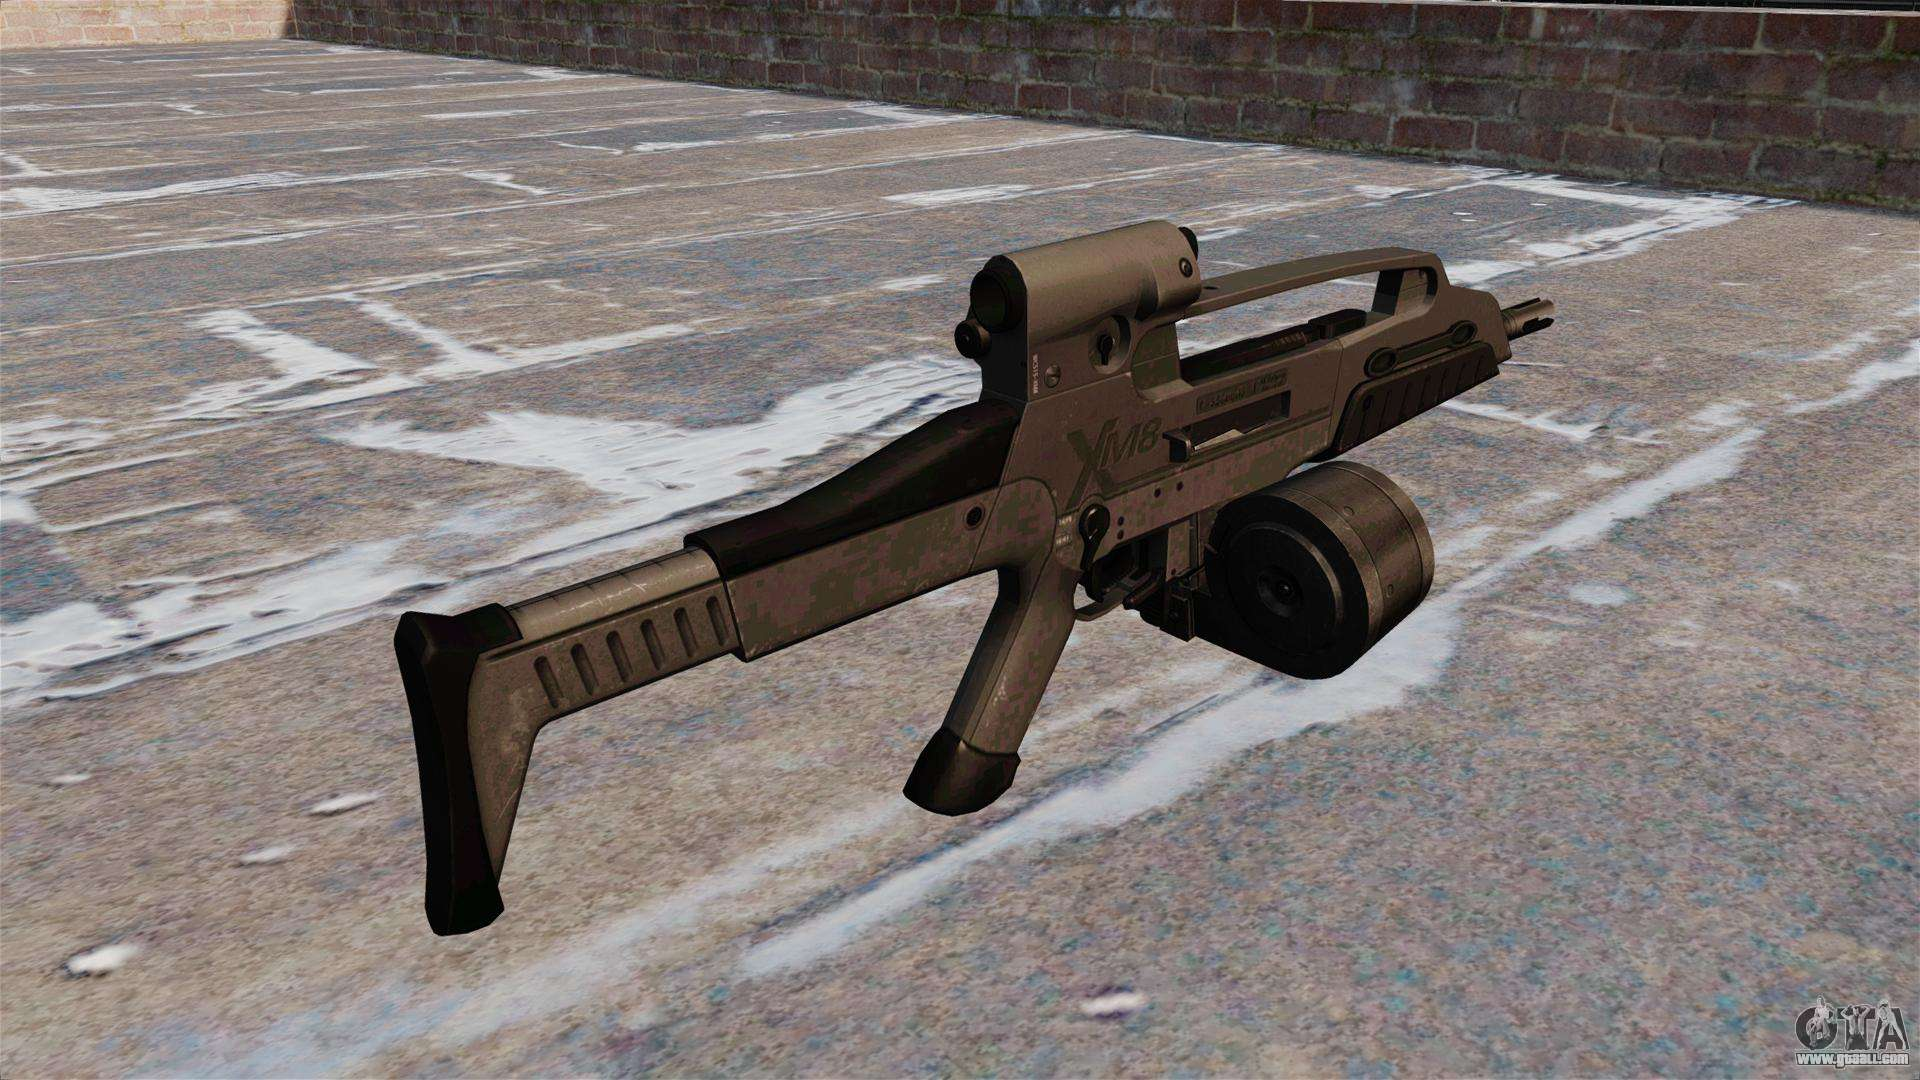 Xm8 Sniper Rifle Related Keywords & Suggestions - Xm8 Sniper Rifle ... M110 Sniper Rifle Suppressed